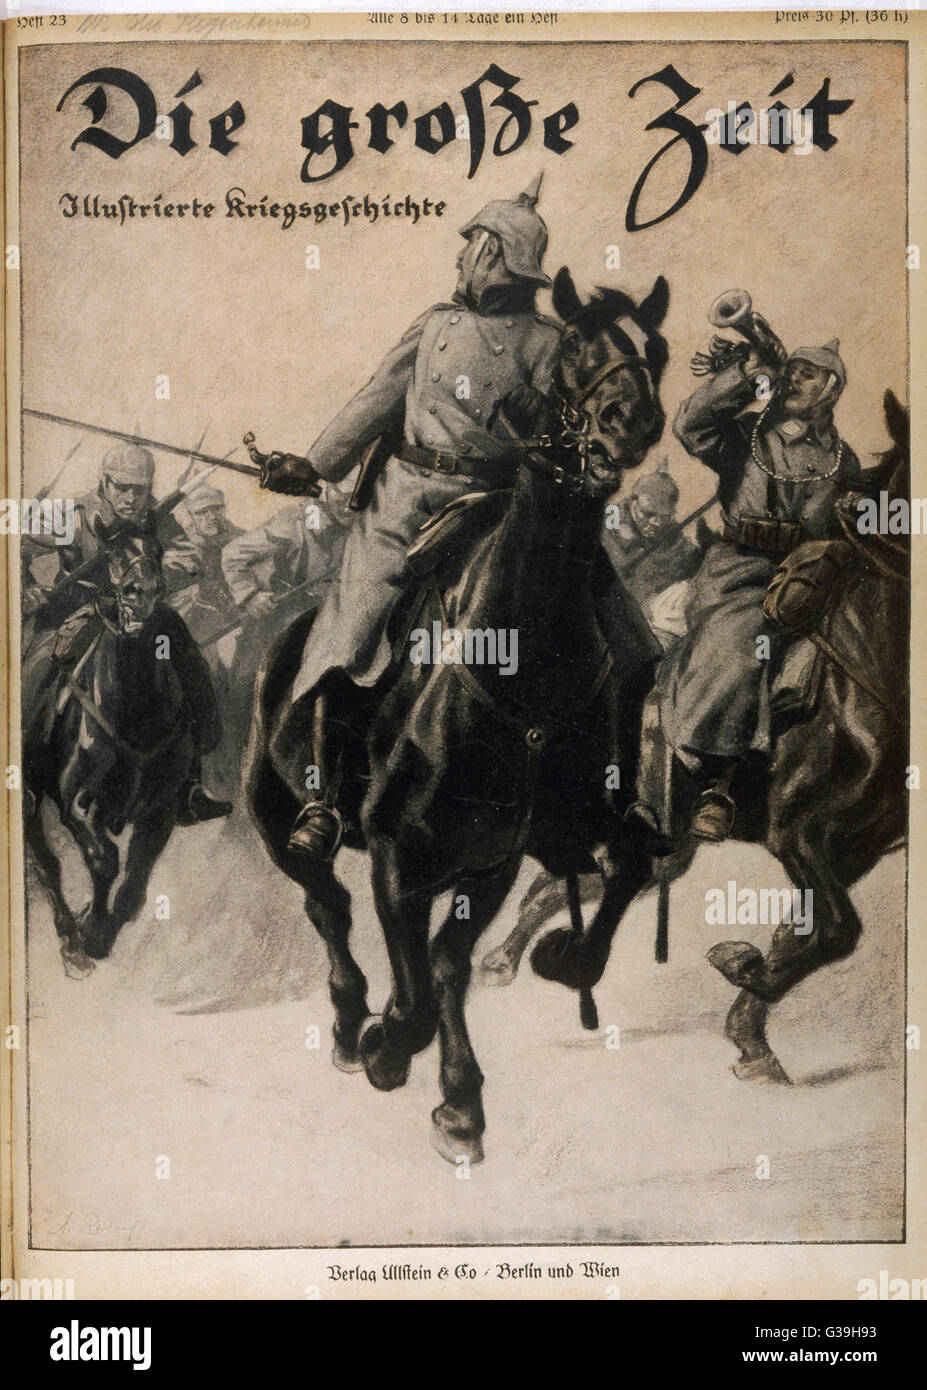 A German cavalry charge          Date: 1915 - Stock Image